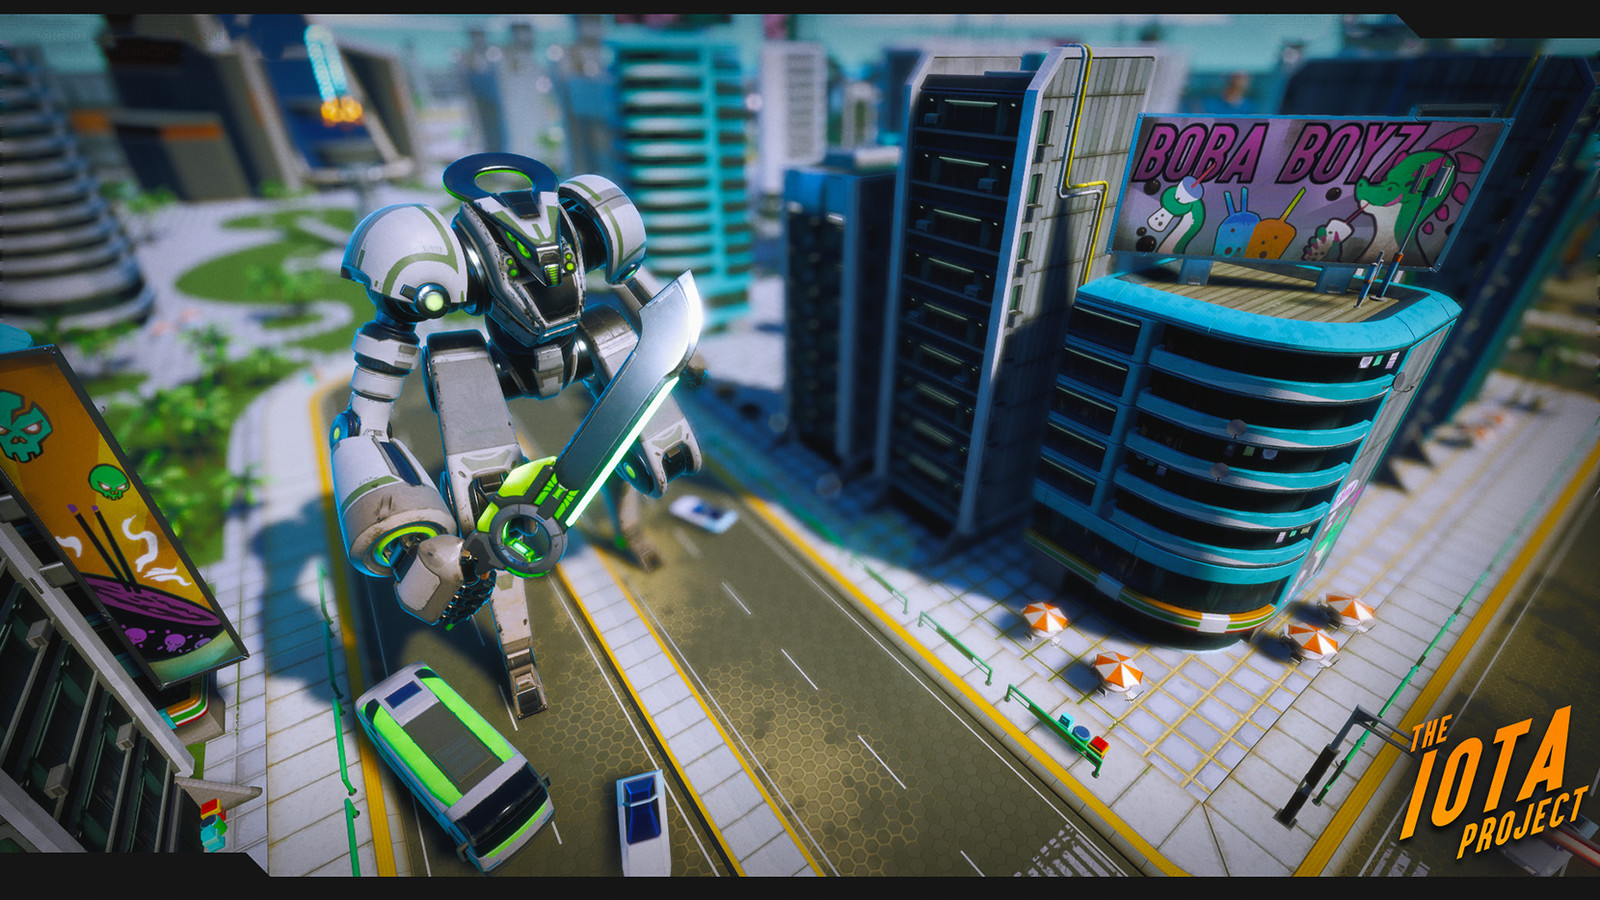 City render - This was our giant mecha enemy!